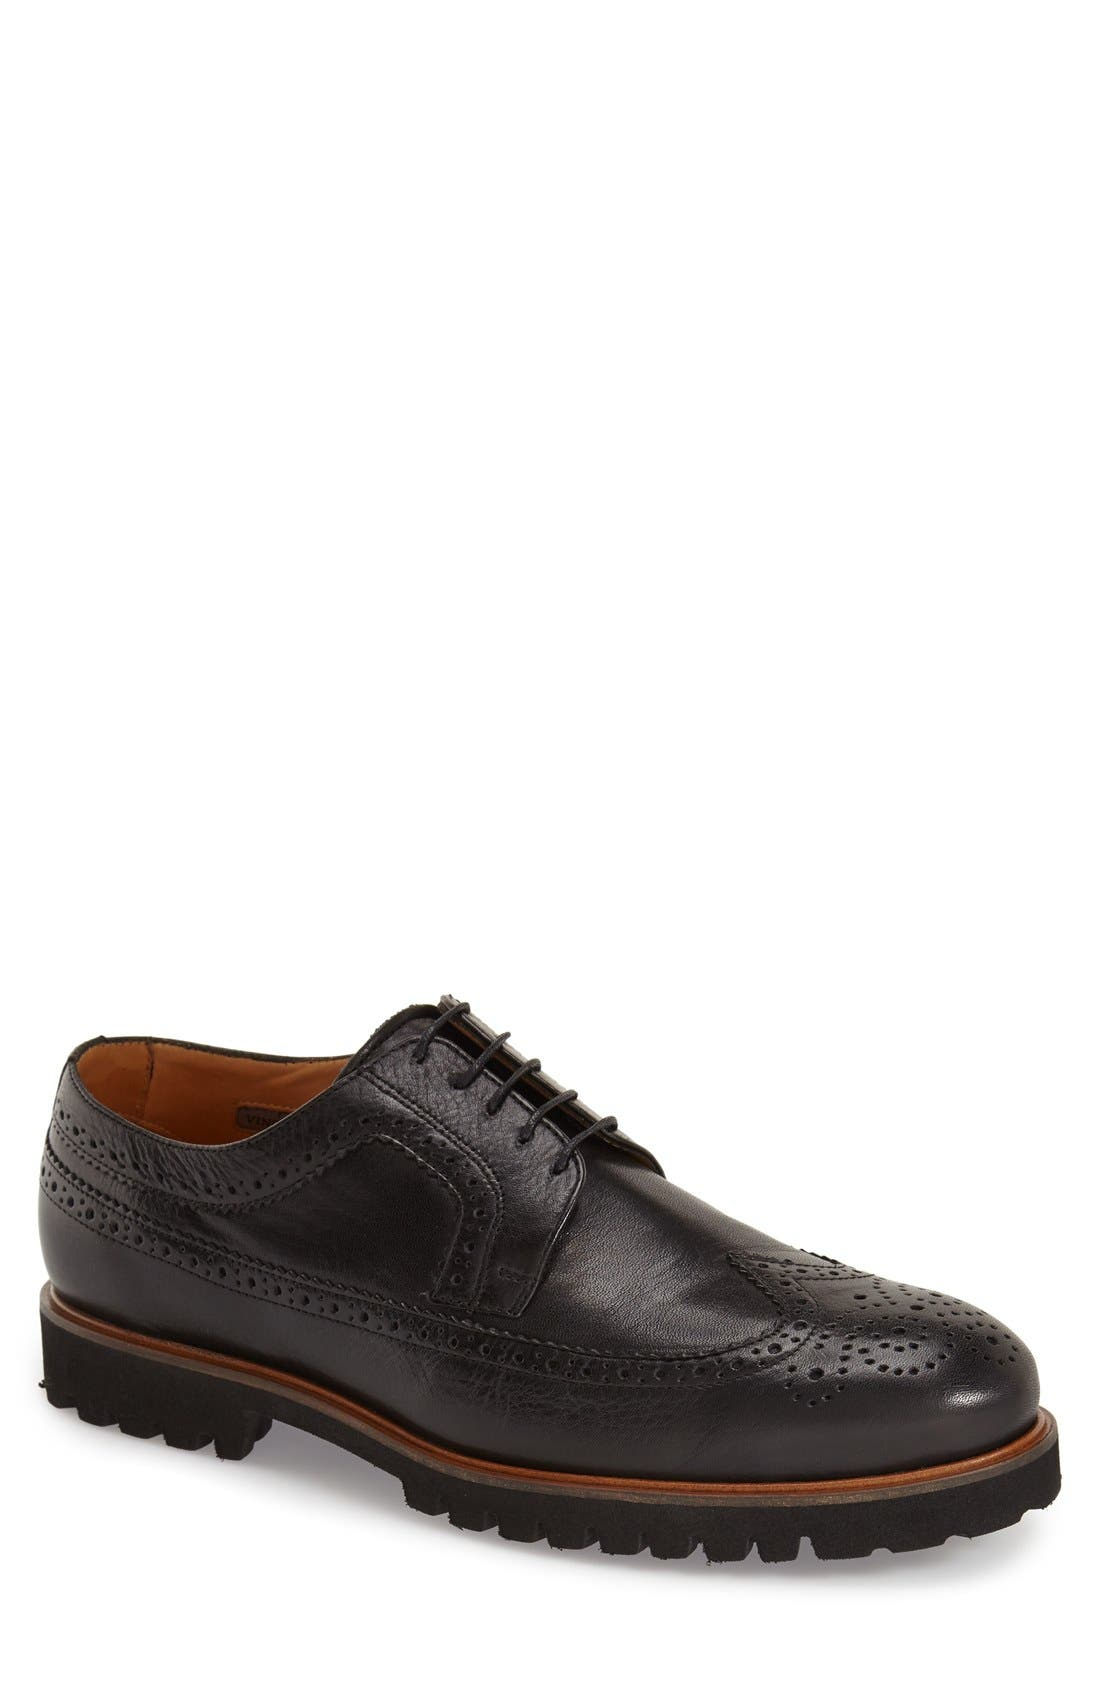 'Loven' Wingtip Derby,                             Main thumbnail 1, color,                             001